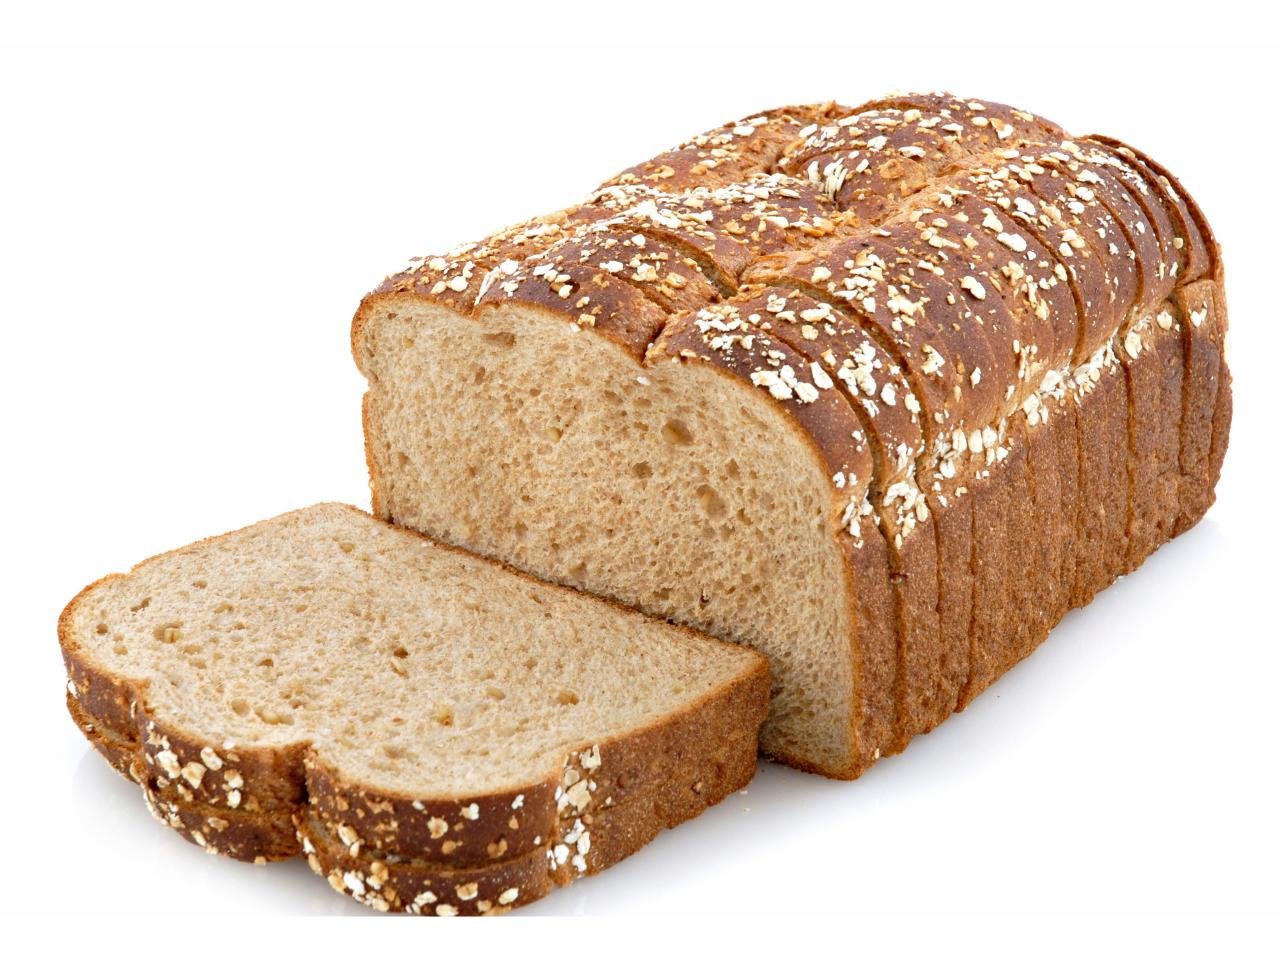 Whole Multigrain Bread Whole Foods